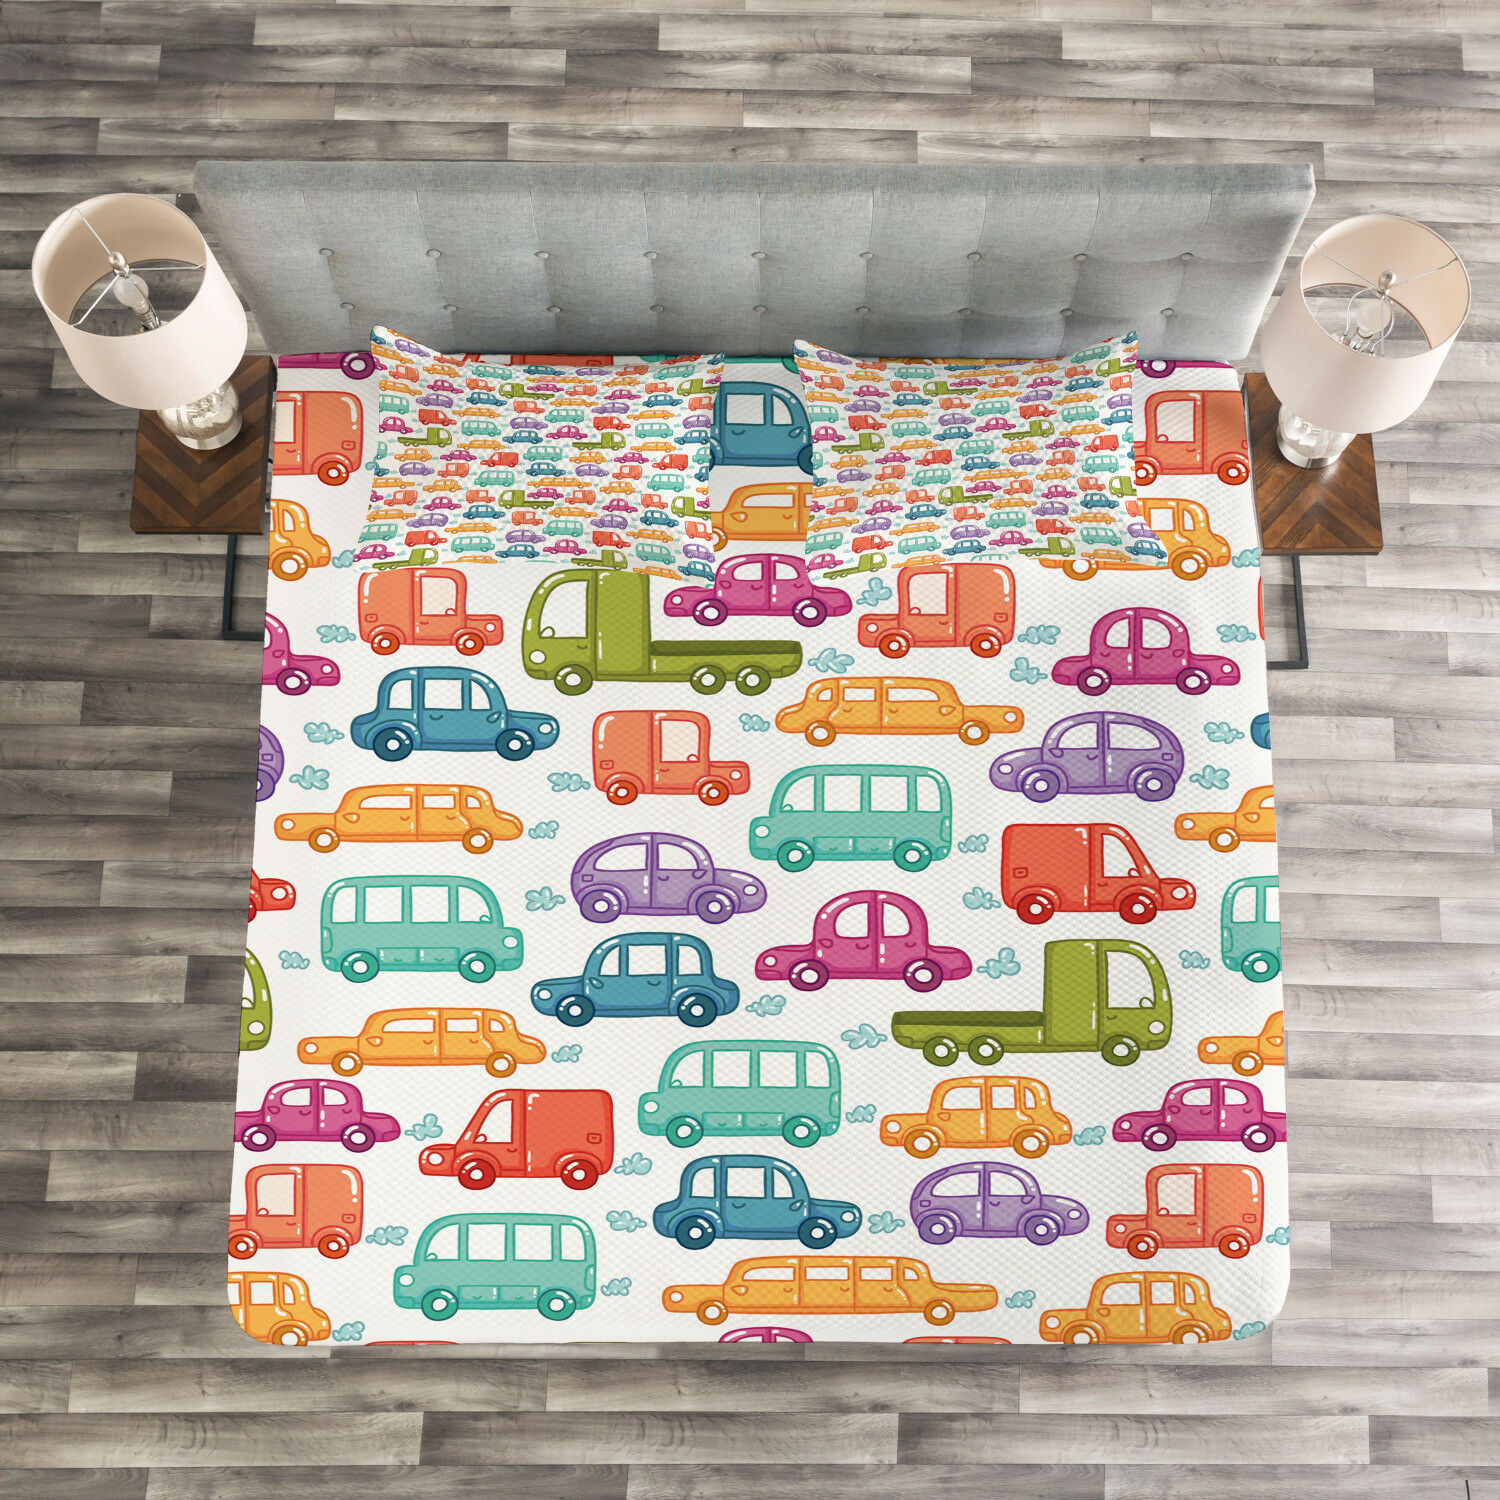 Arielle Bettwäsche Cars Quilted Bedspread Pillow Shams Set Vibrant Doodle Style